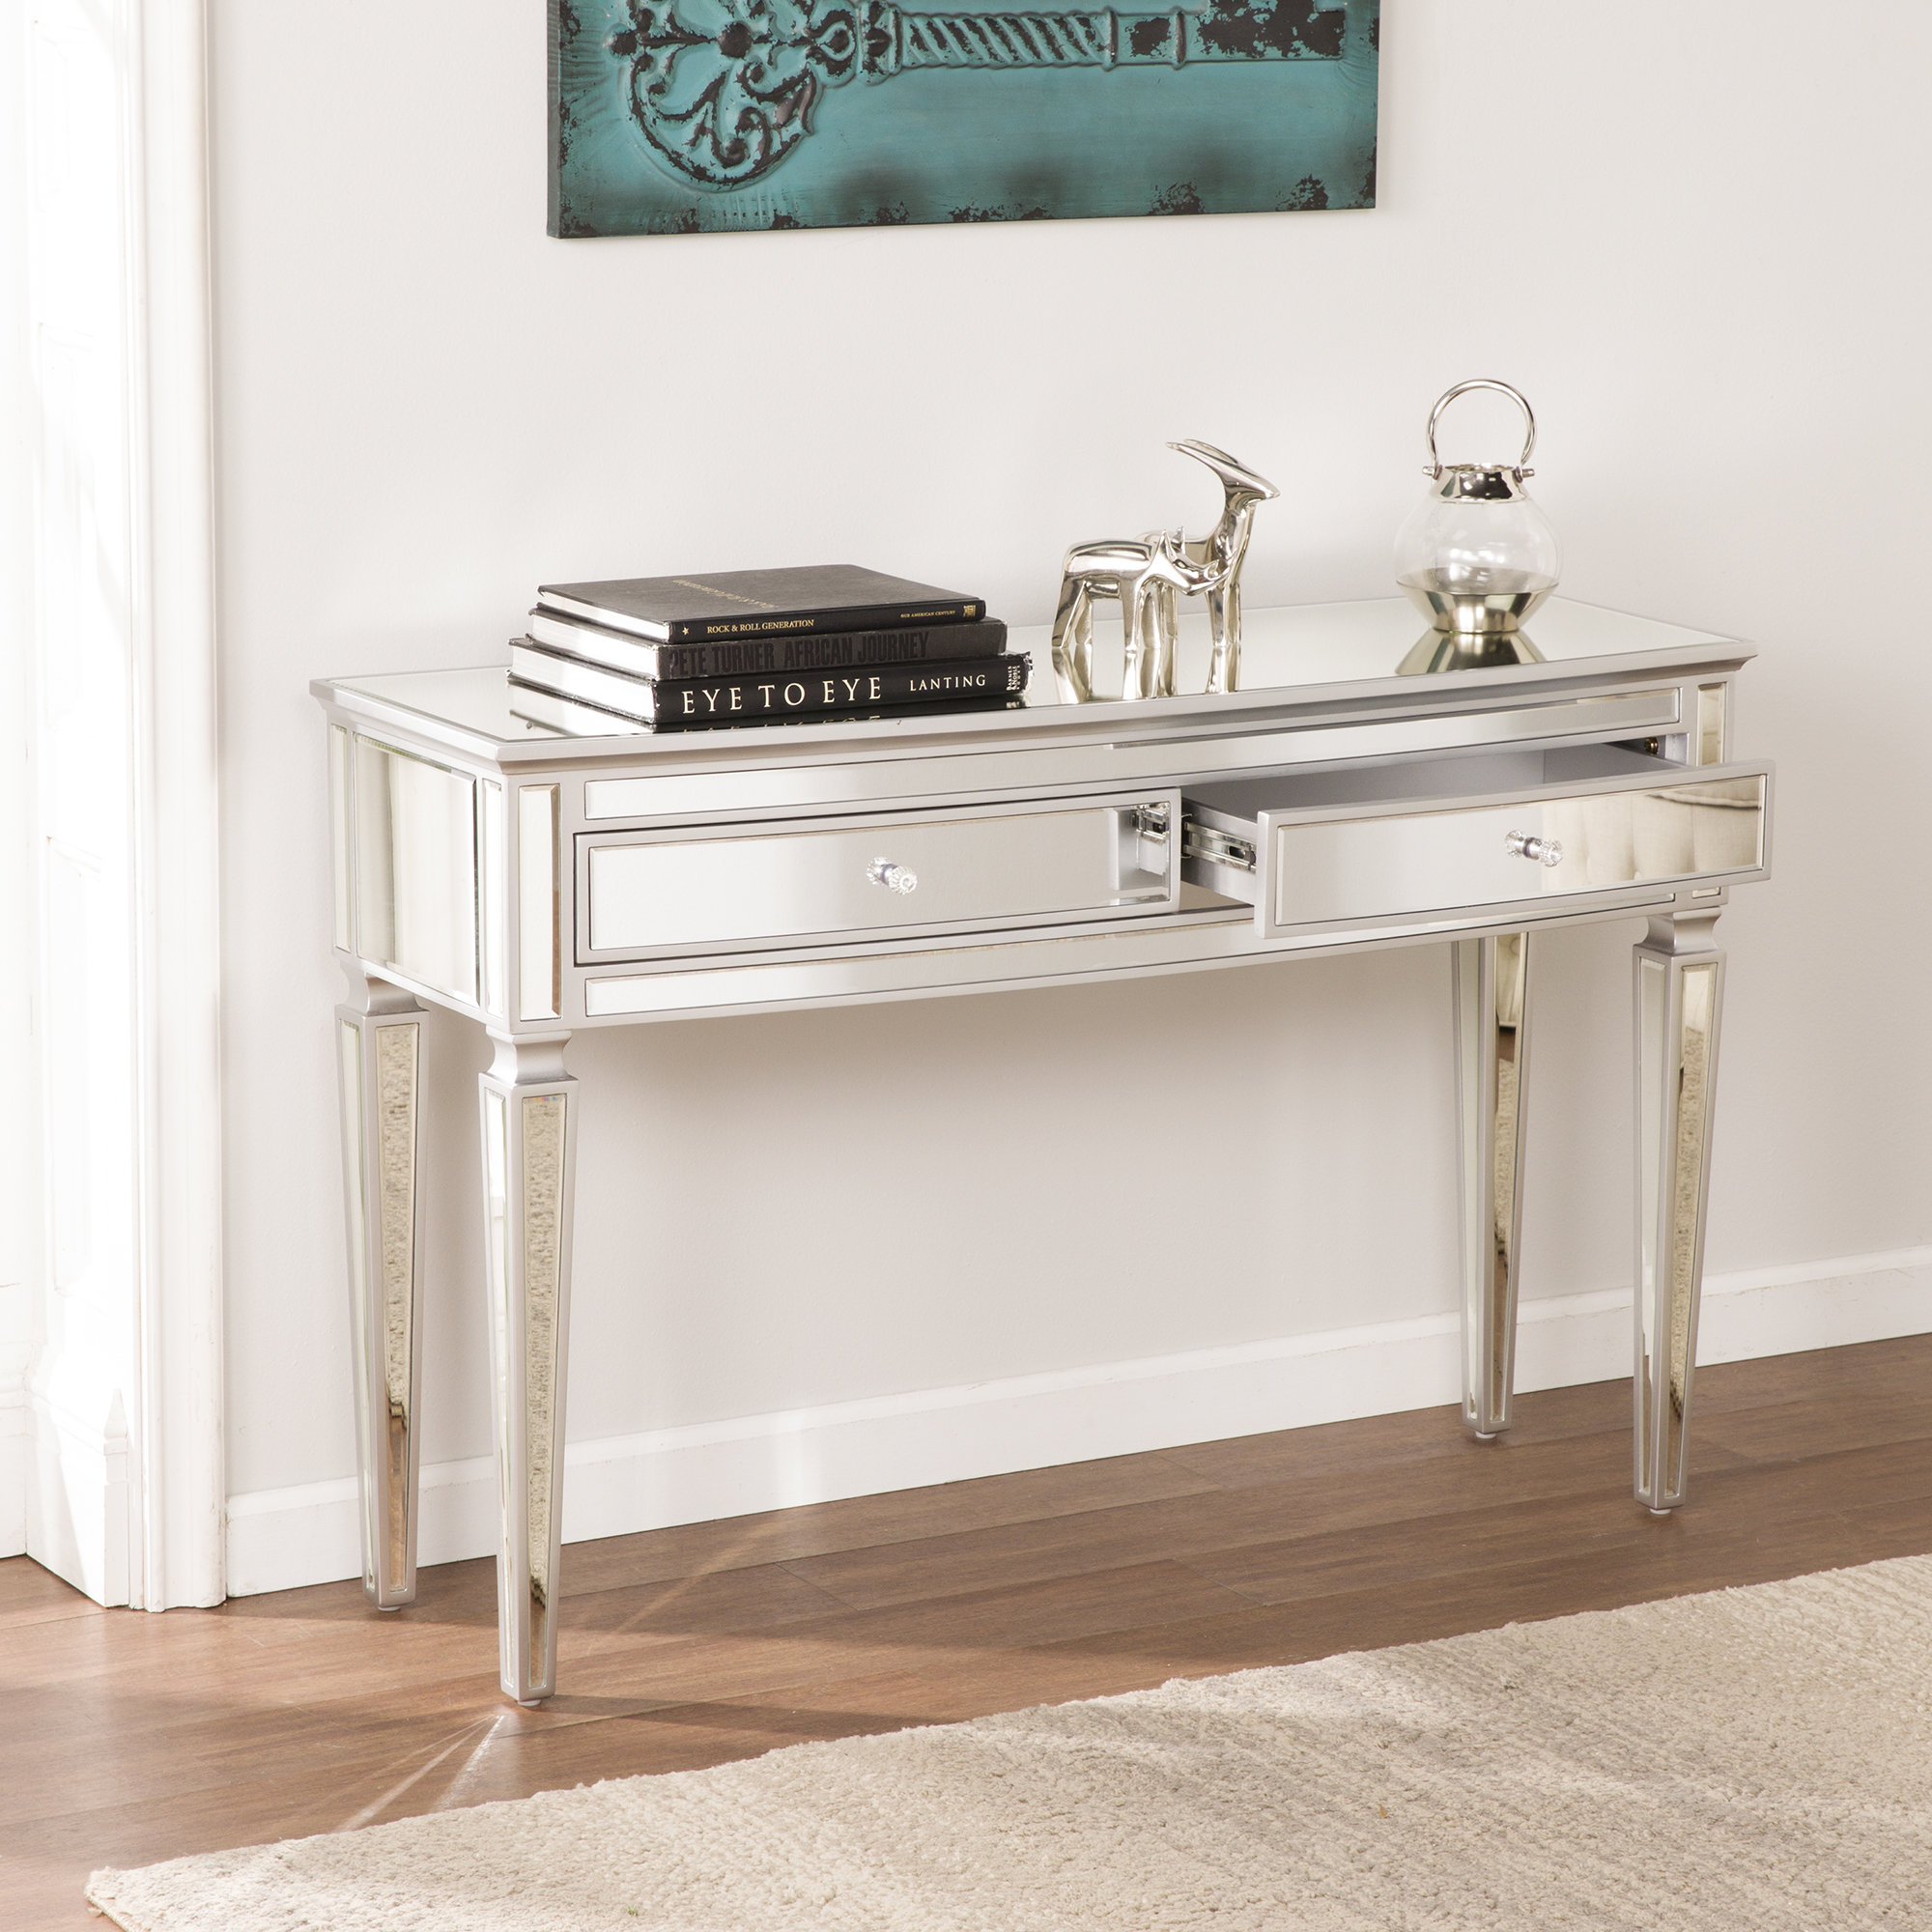 Mirrored Console Tables You'll Love | Wayfair for Natural Wood Mirrored Media Console Tables (Image 16 of 30)